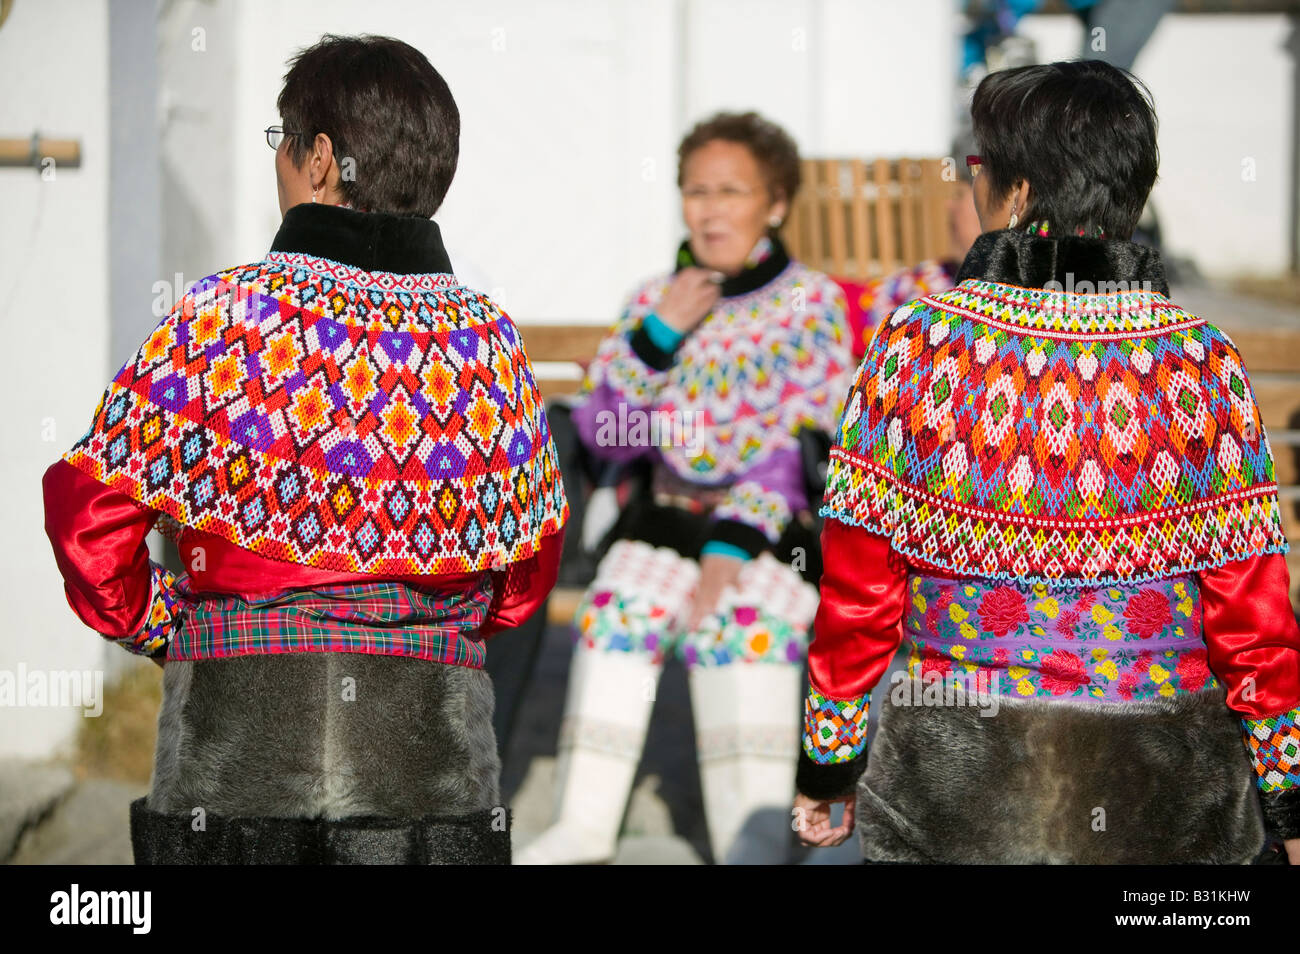 women in greenland